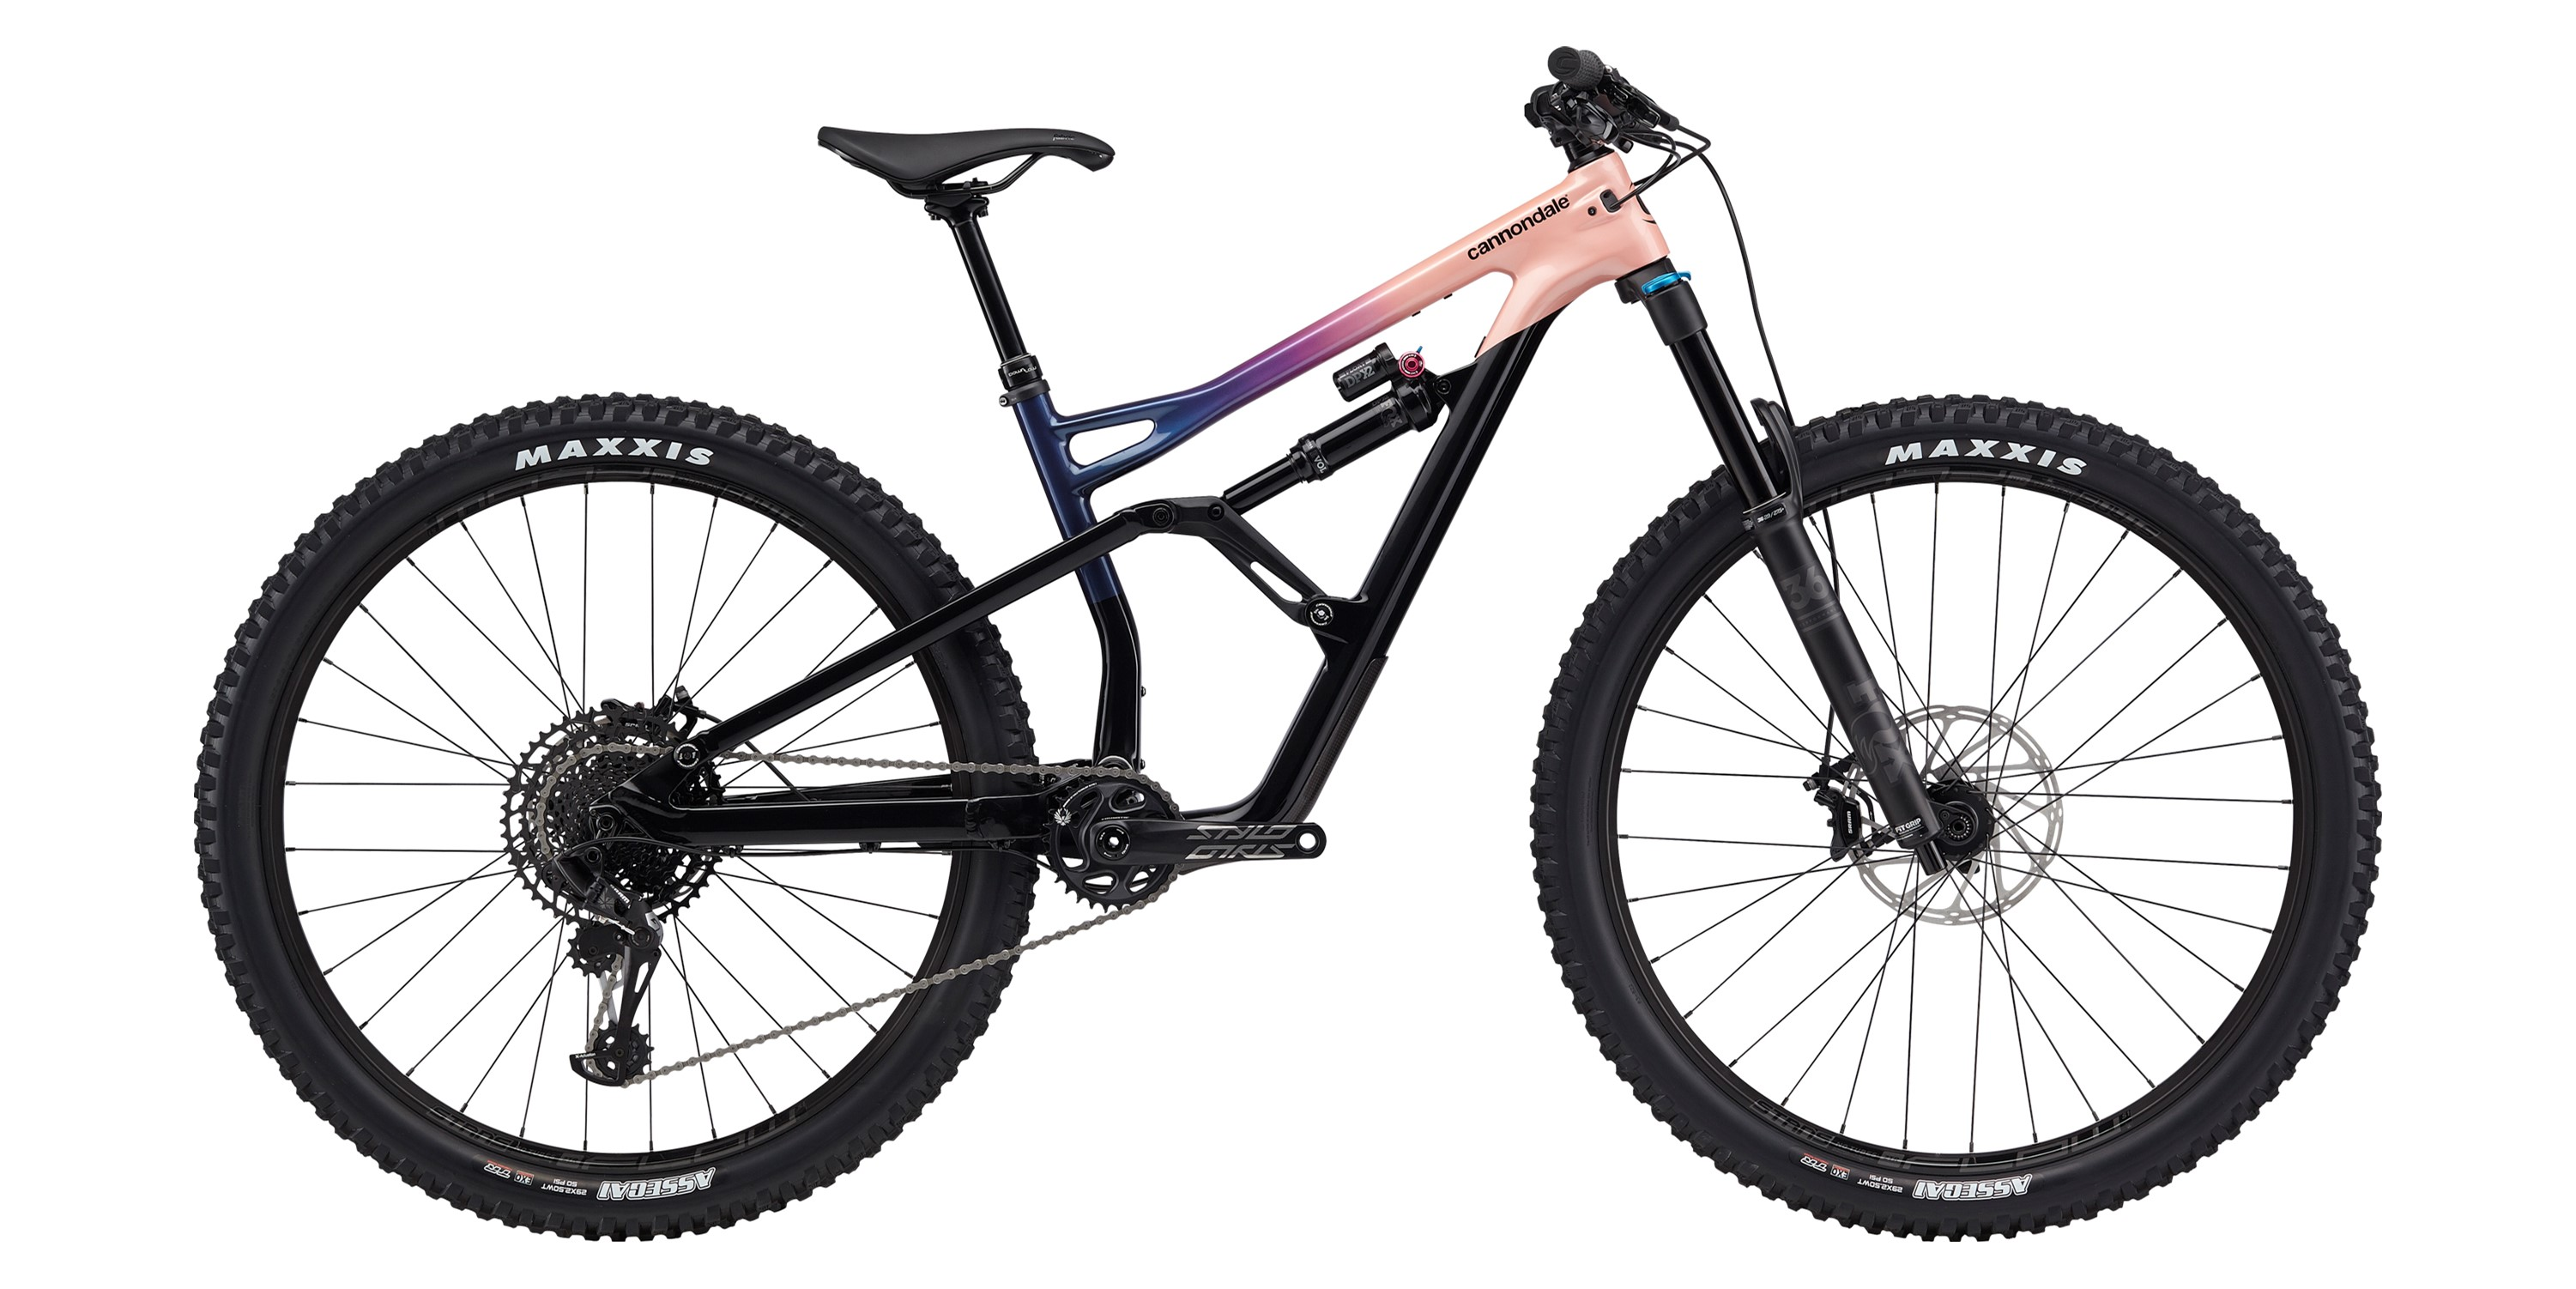 2020 Cannondale Jekyll 1 Carbon Womens FS Mountain Bike in Pink | MTB